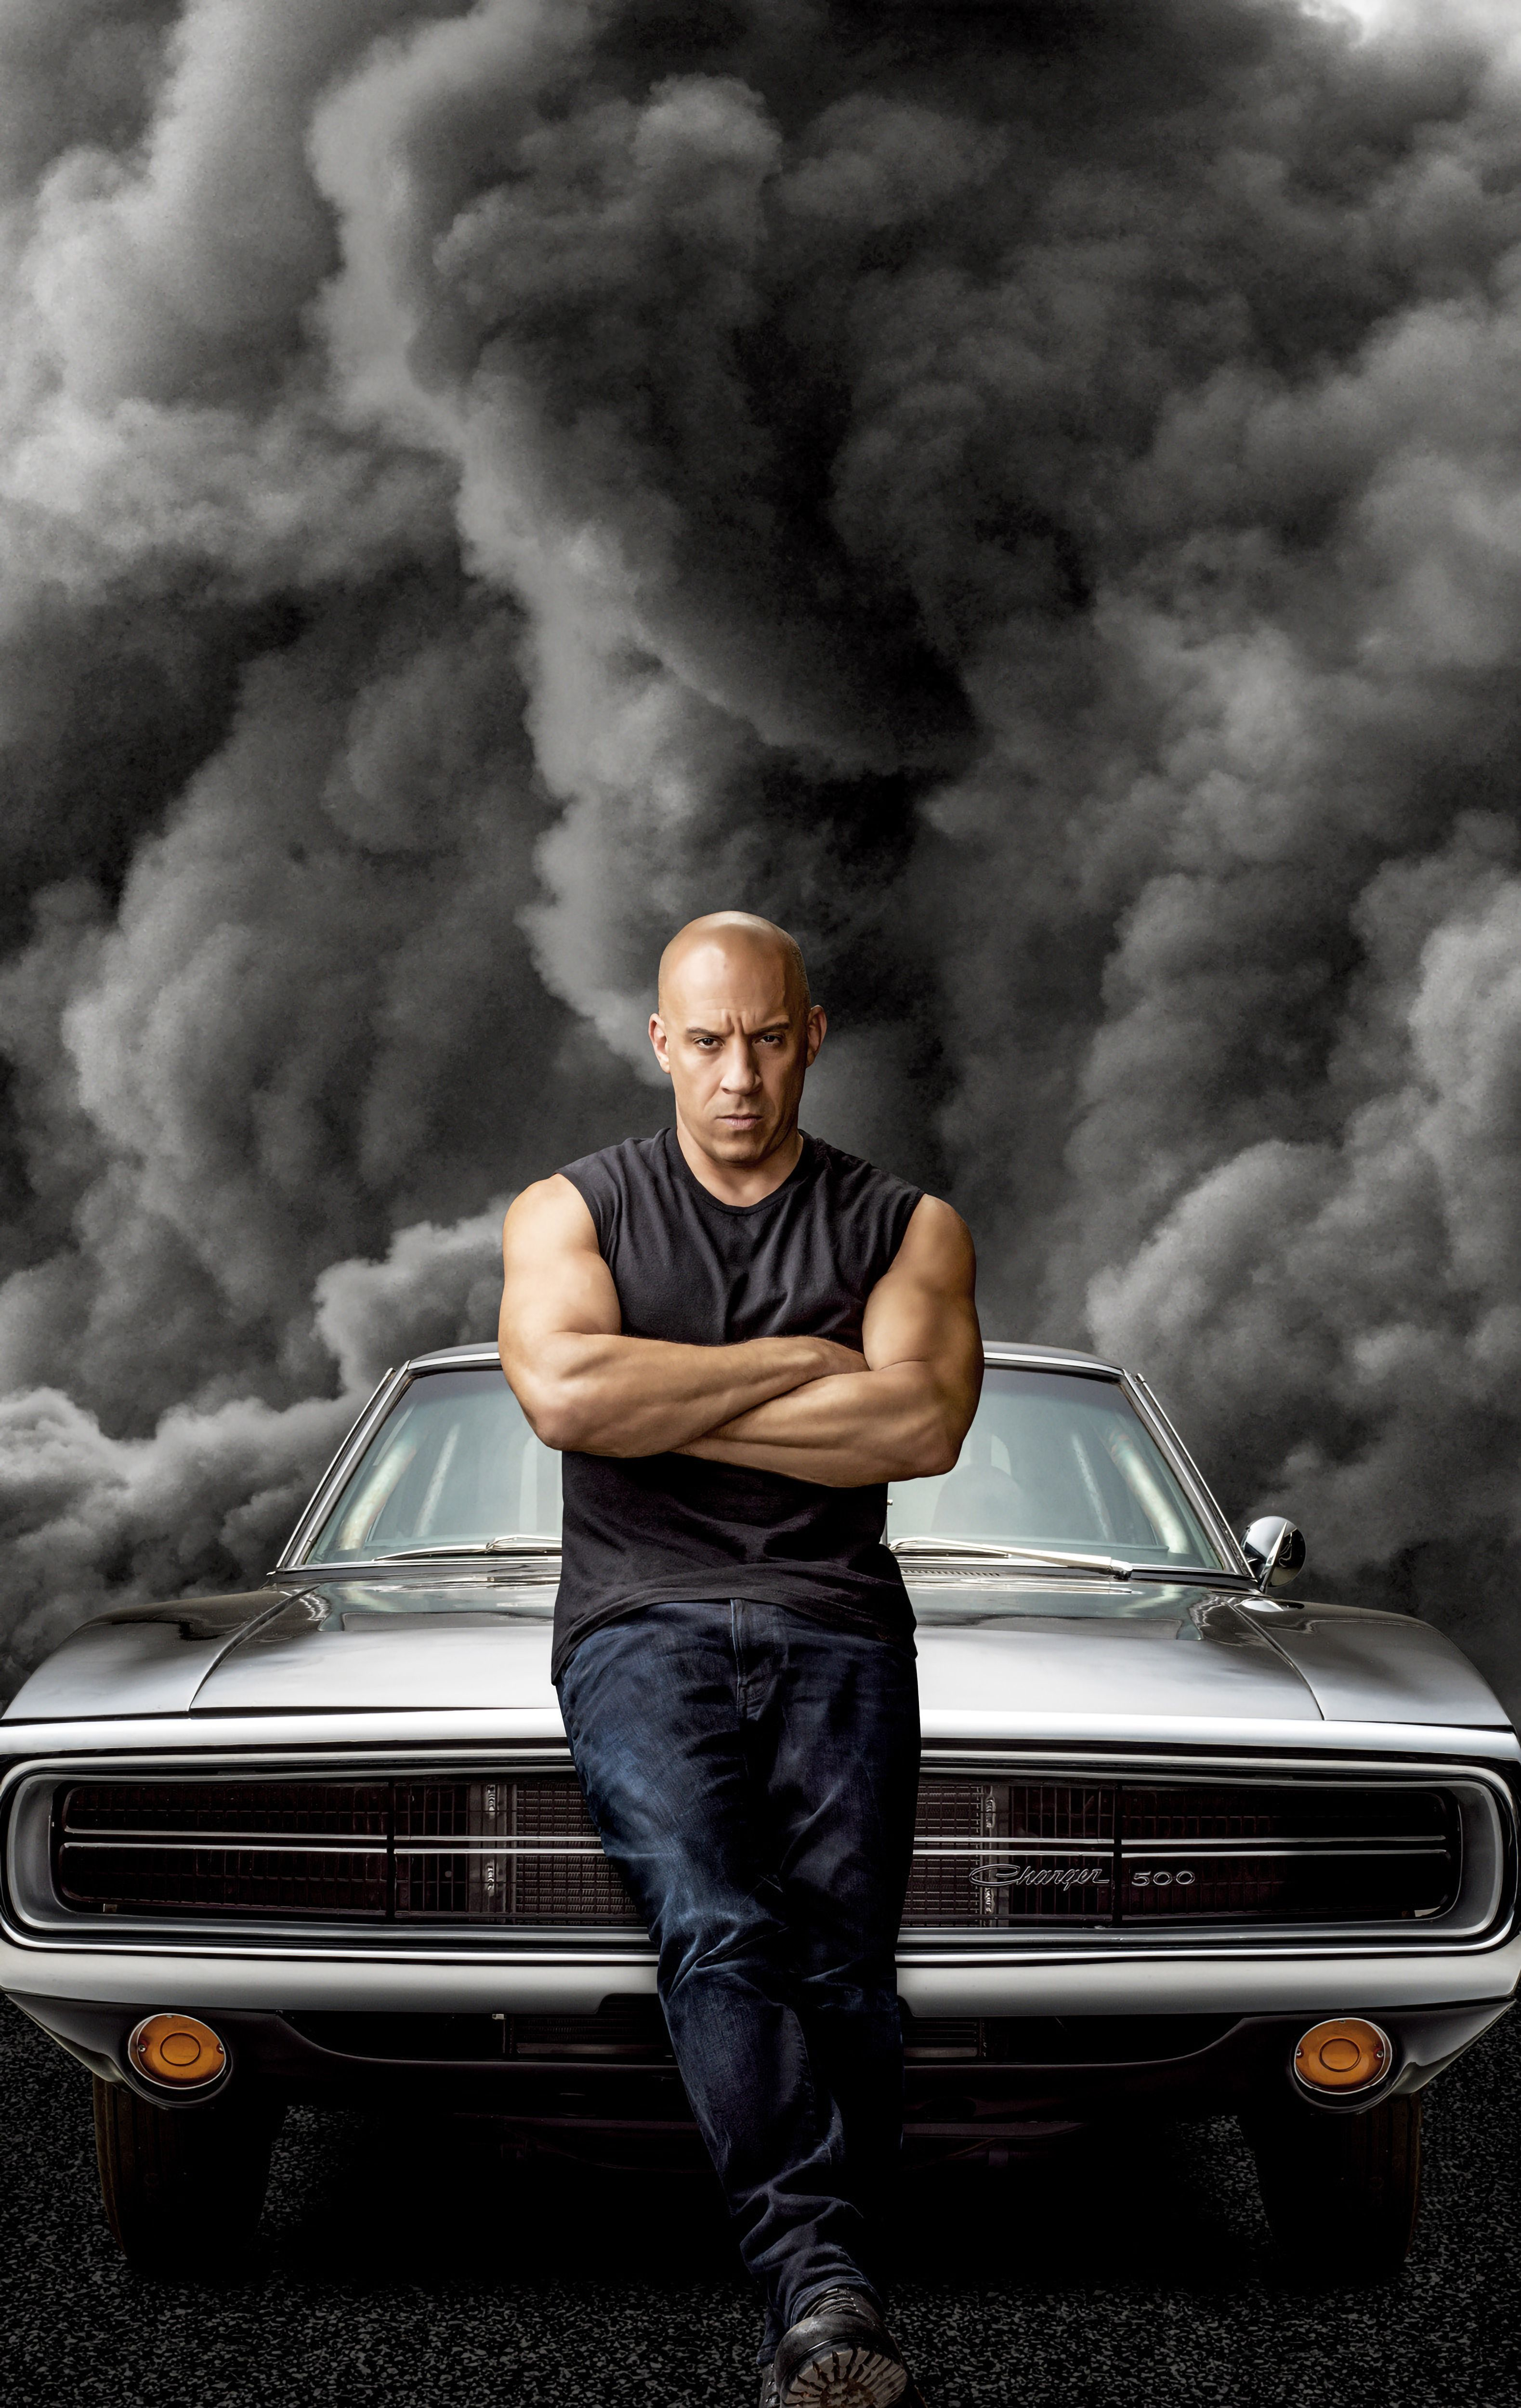 Fast and Furious 9 Wallpapers - Top Free Fast and Furious 9 Backgrounds -  WallpaperAccess